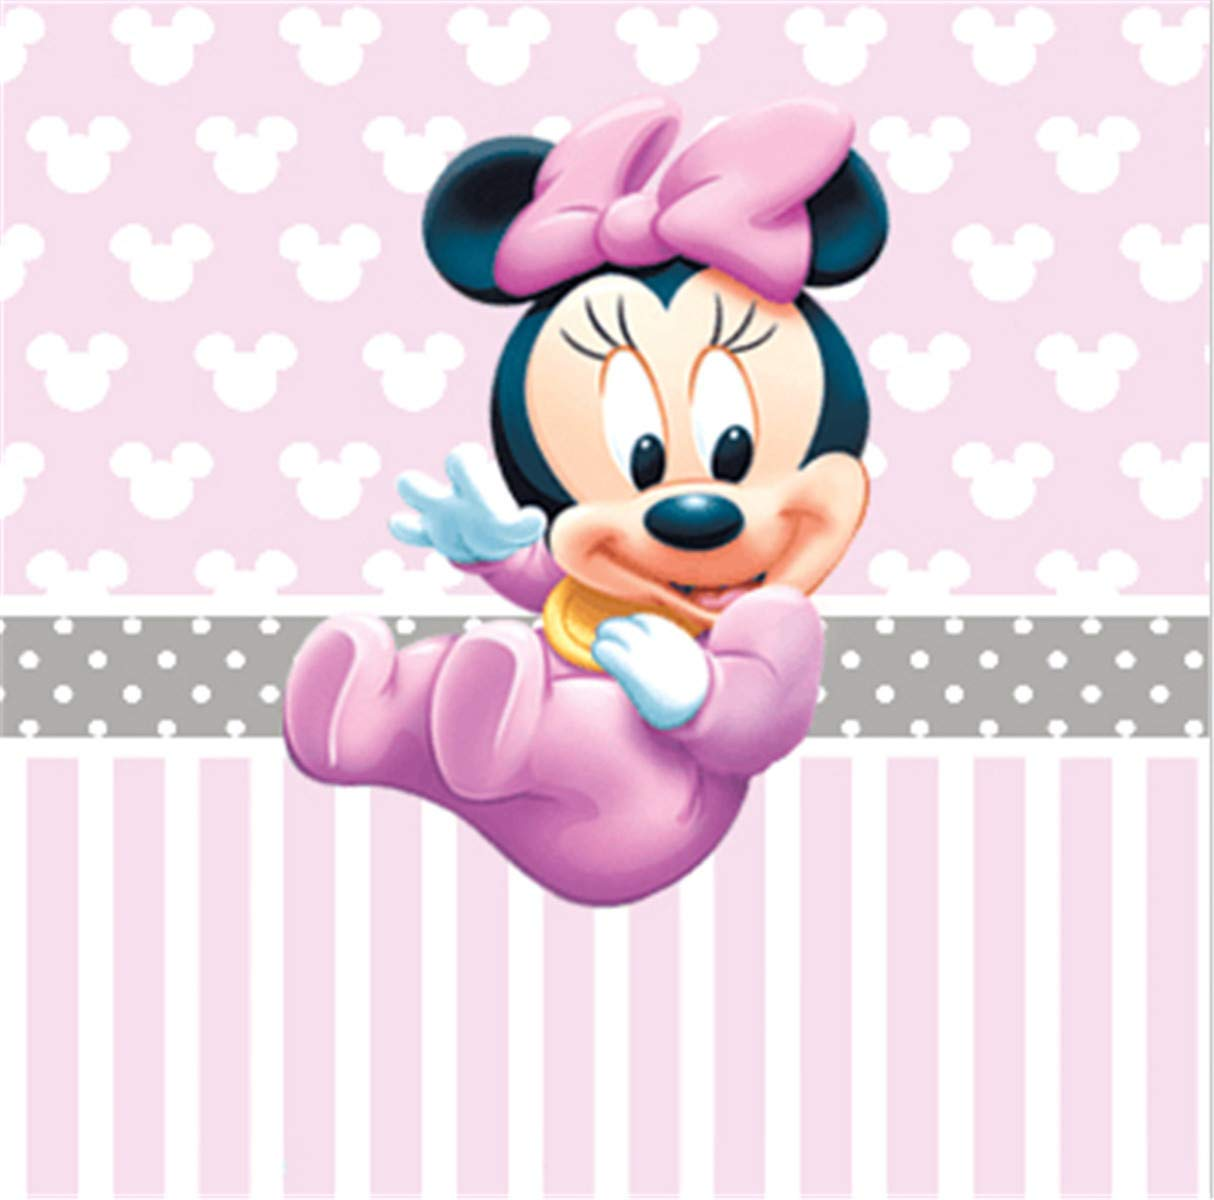 Baby Minnie Mouse 28 Images Dodowallpaper